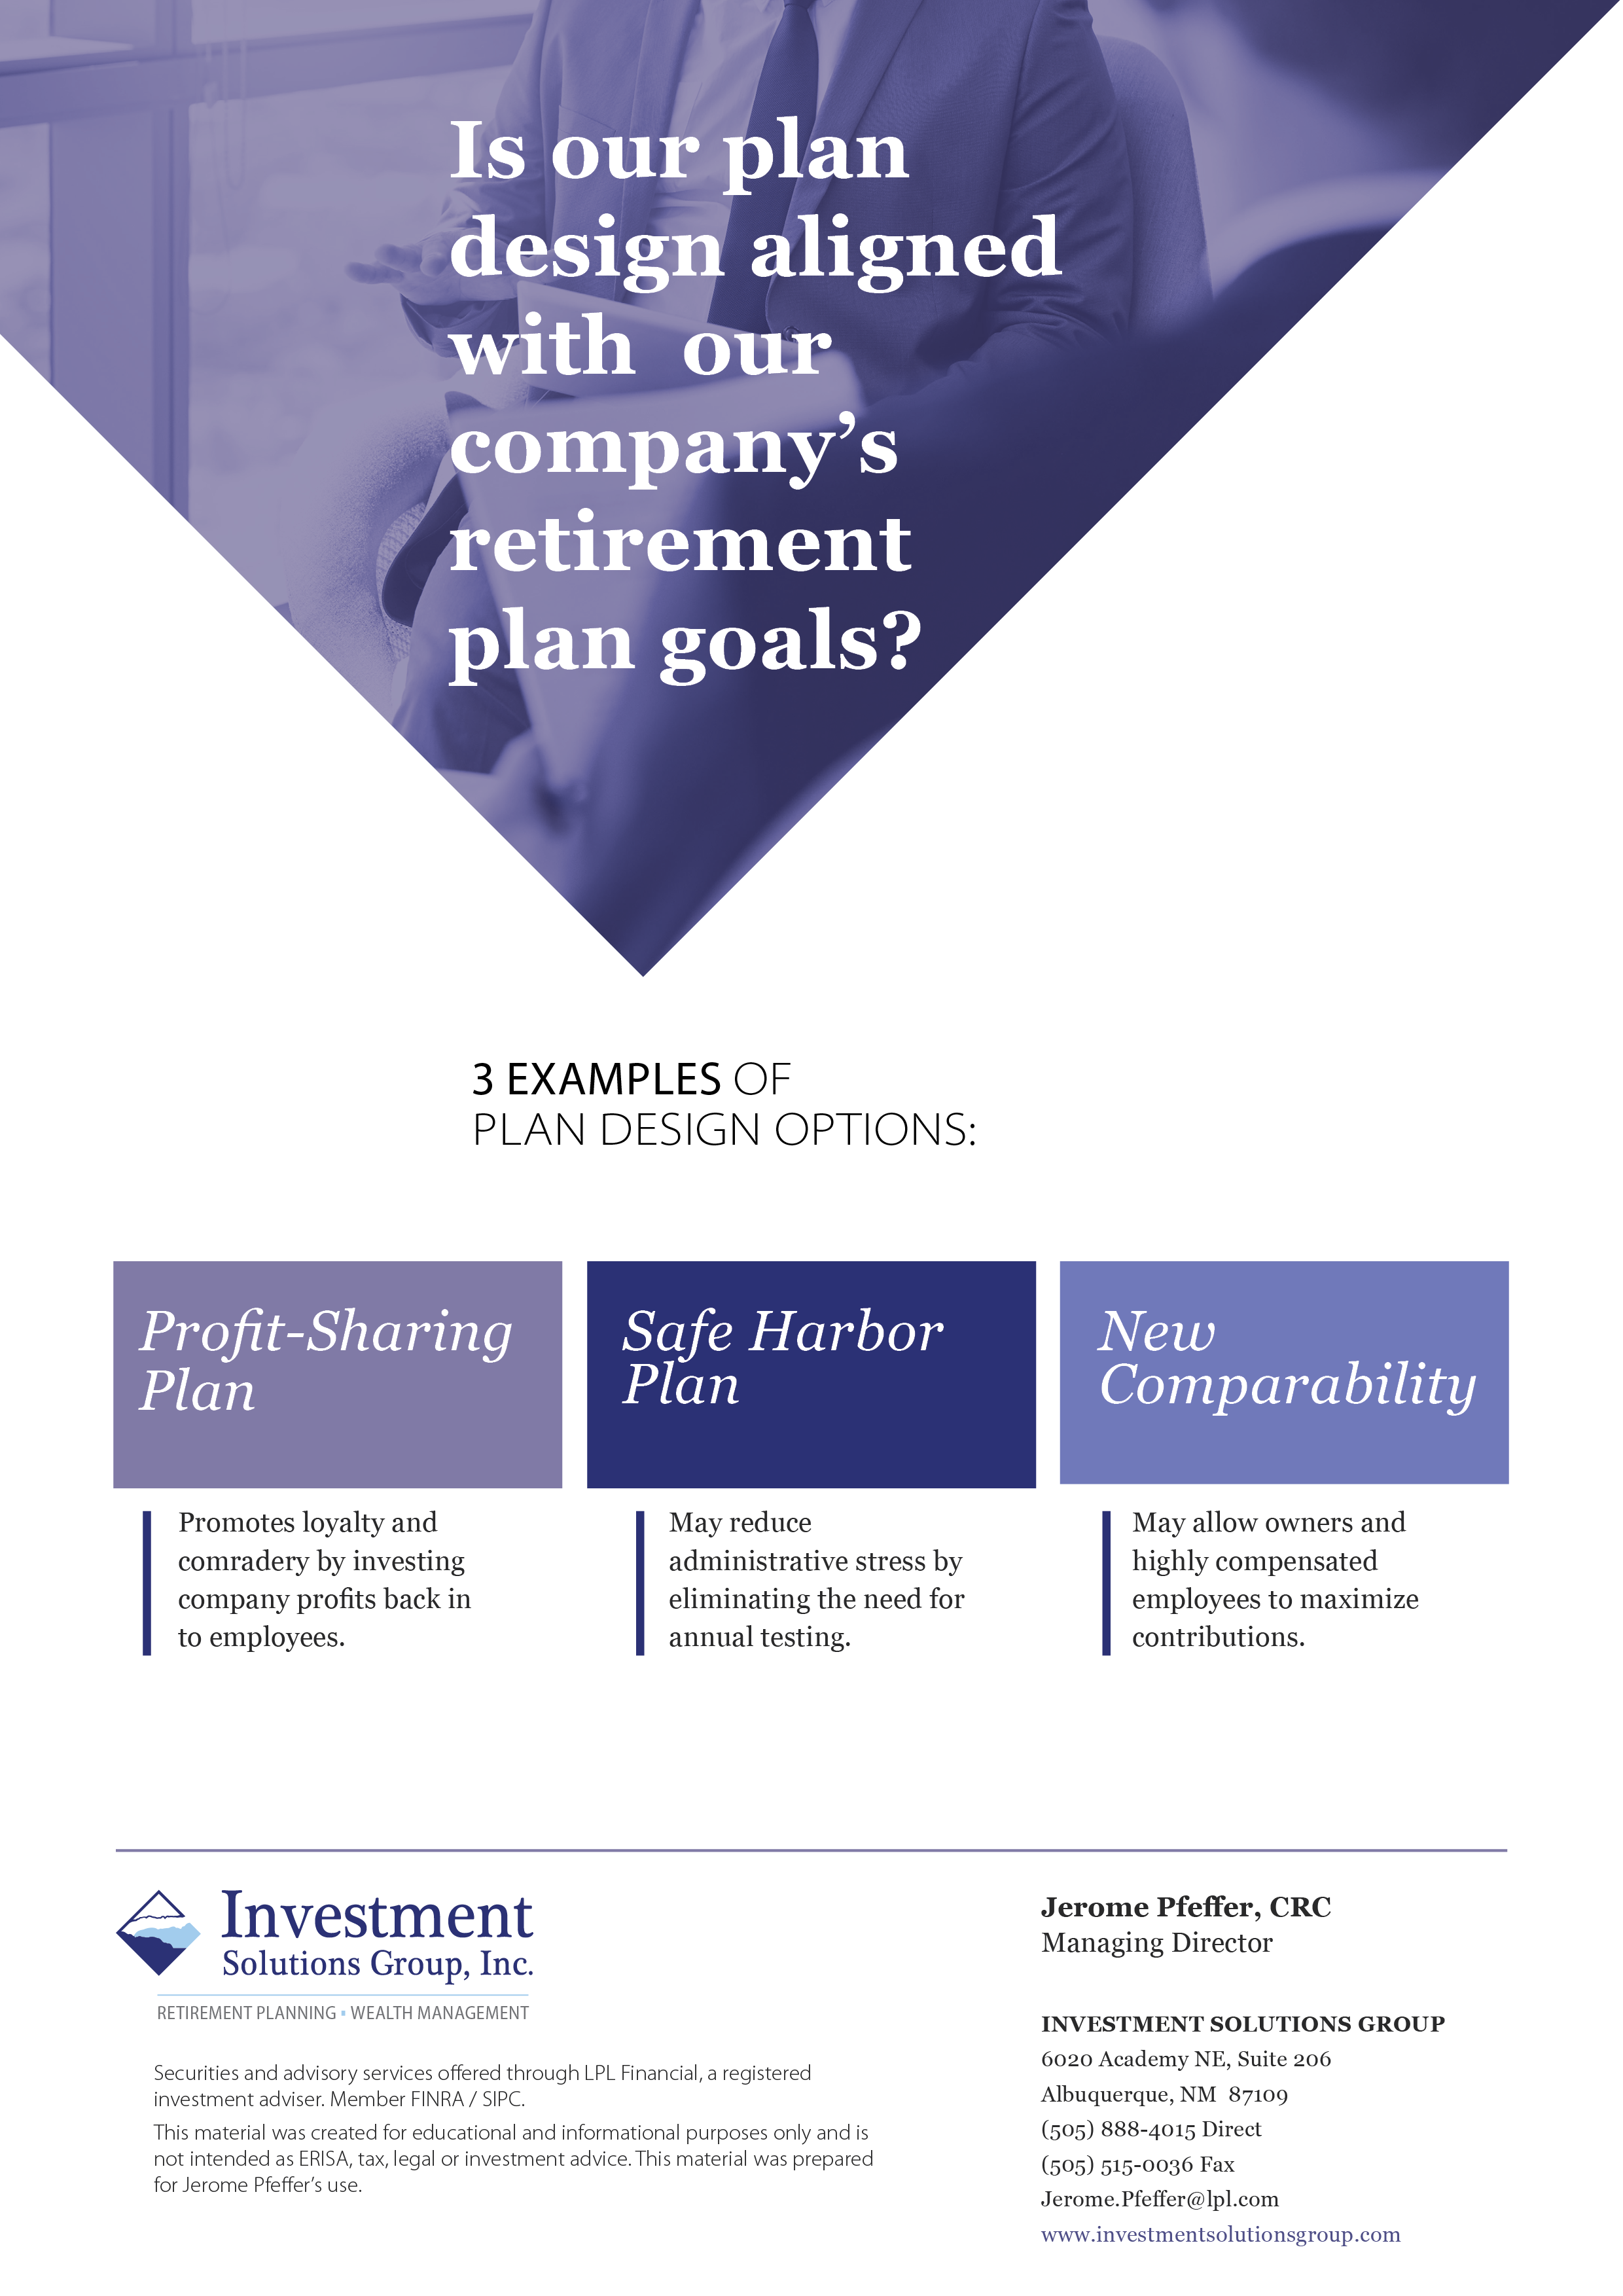 Investment policy statements for 401k plans - Aligning Company Goals With Effective Plan Design